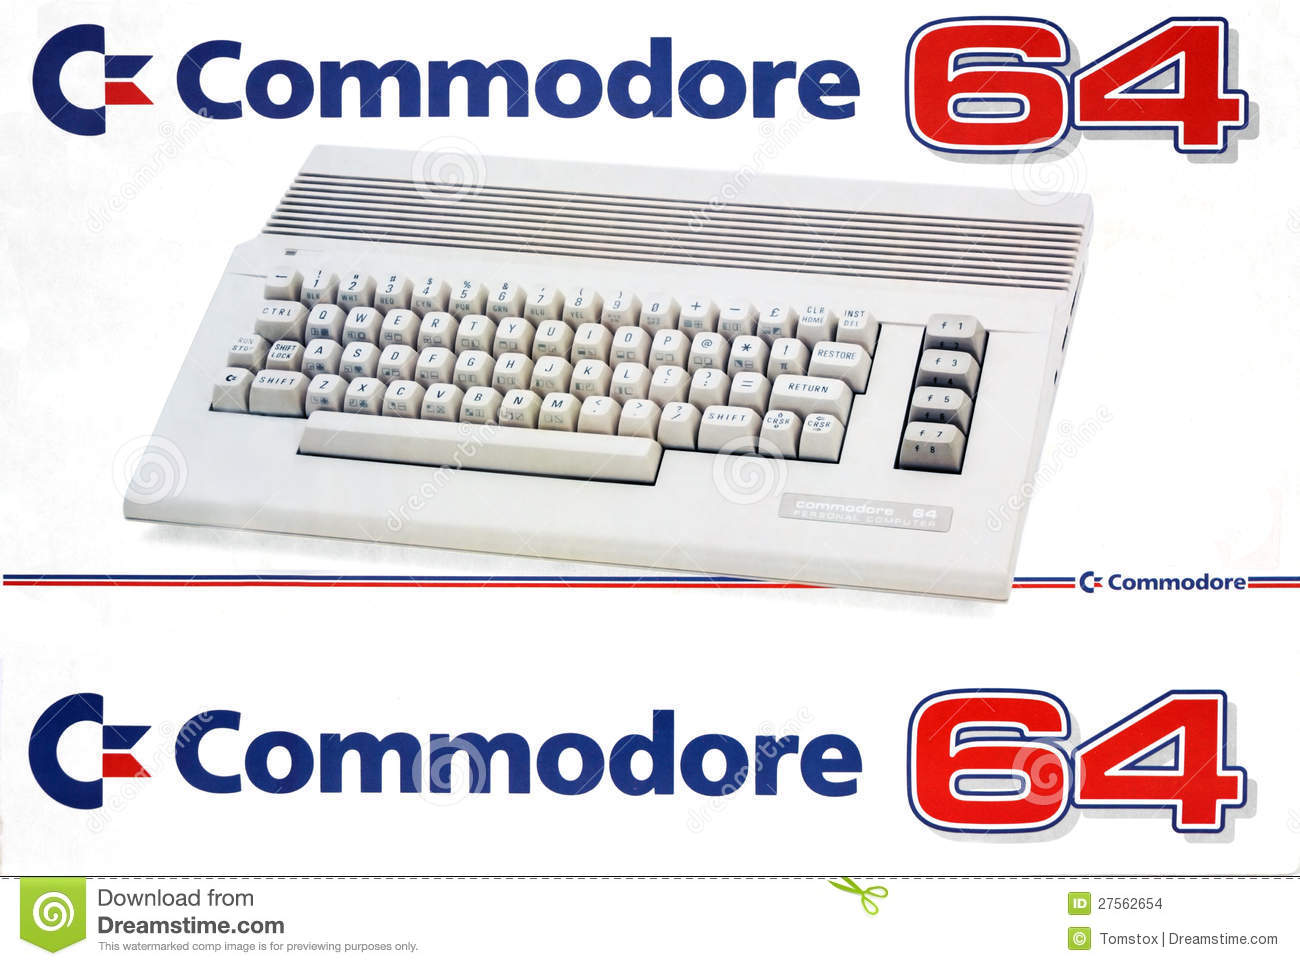 Retro Computer Commodore 64 Editorial Stock Image.